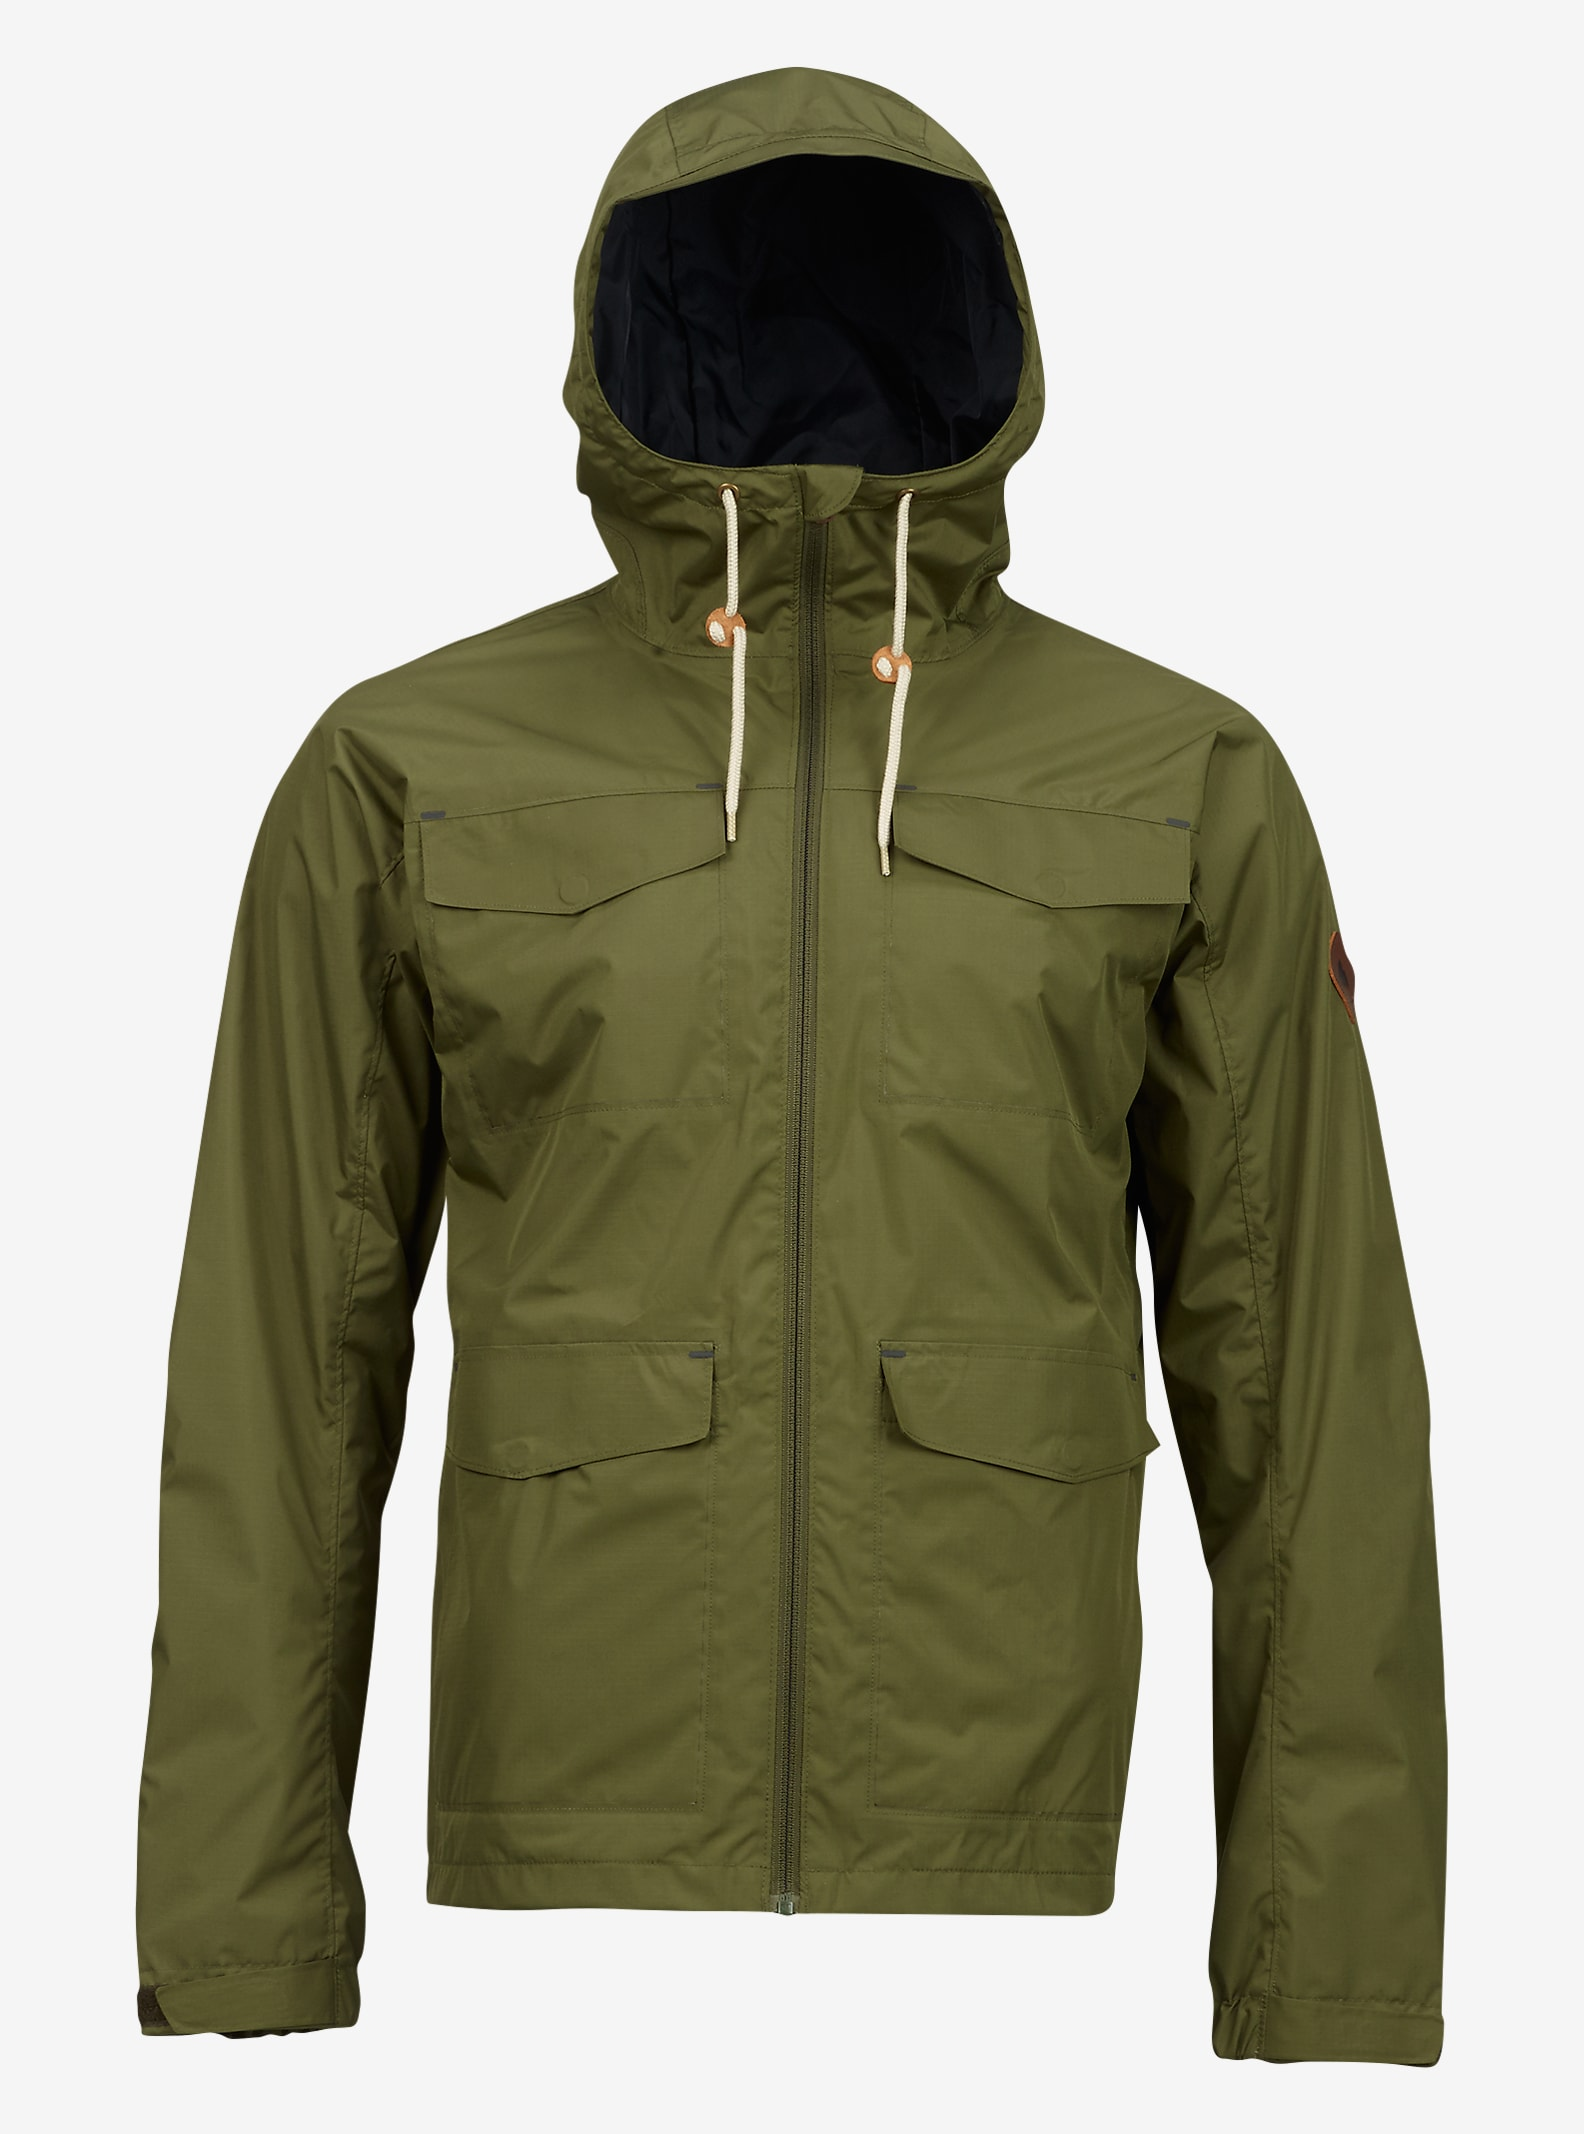 Burton Davis Jacket shown in Olive Night